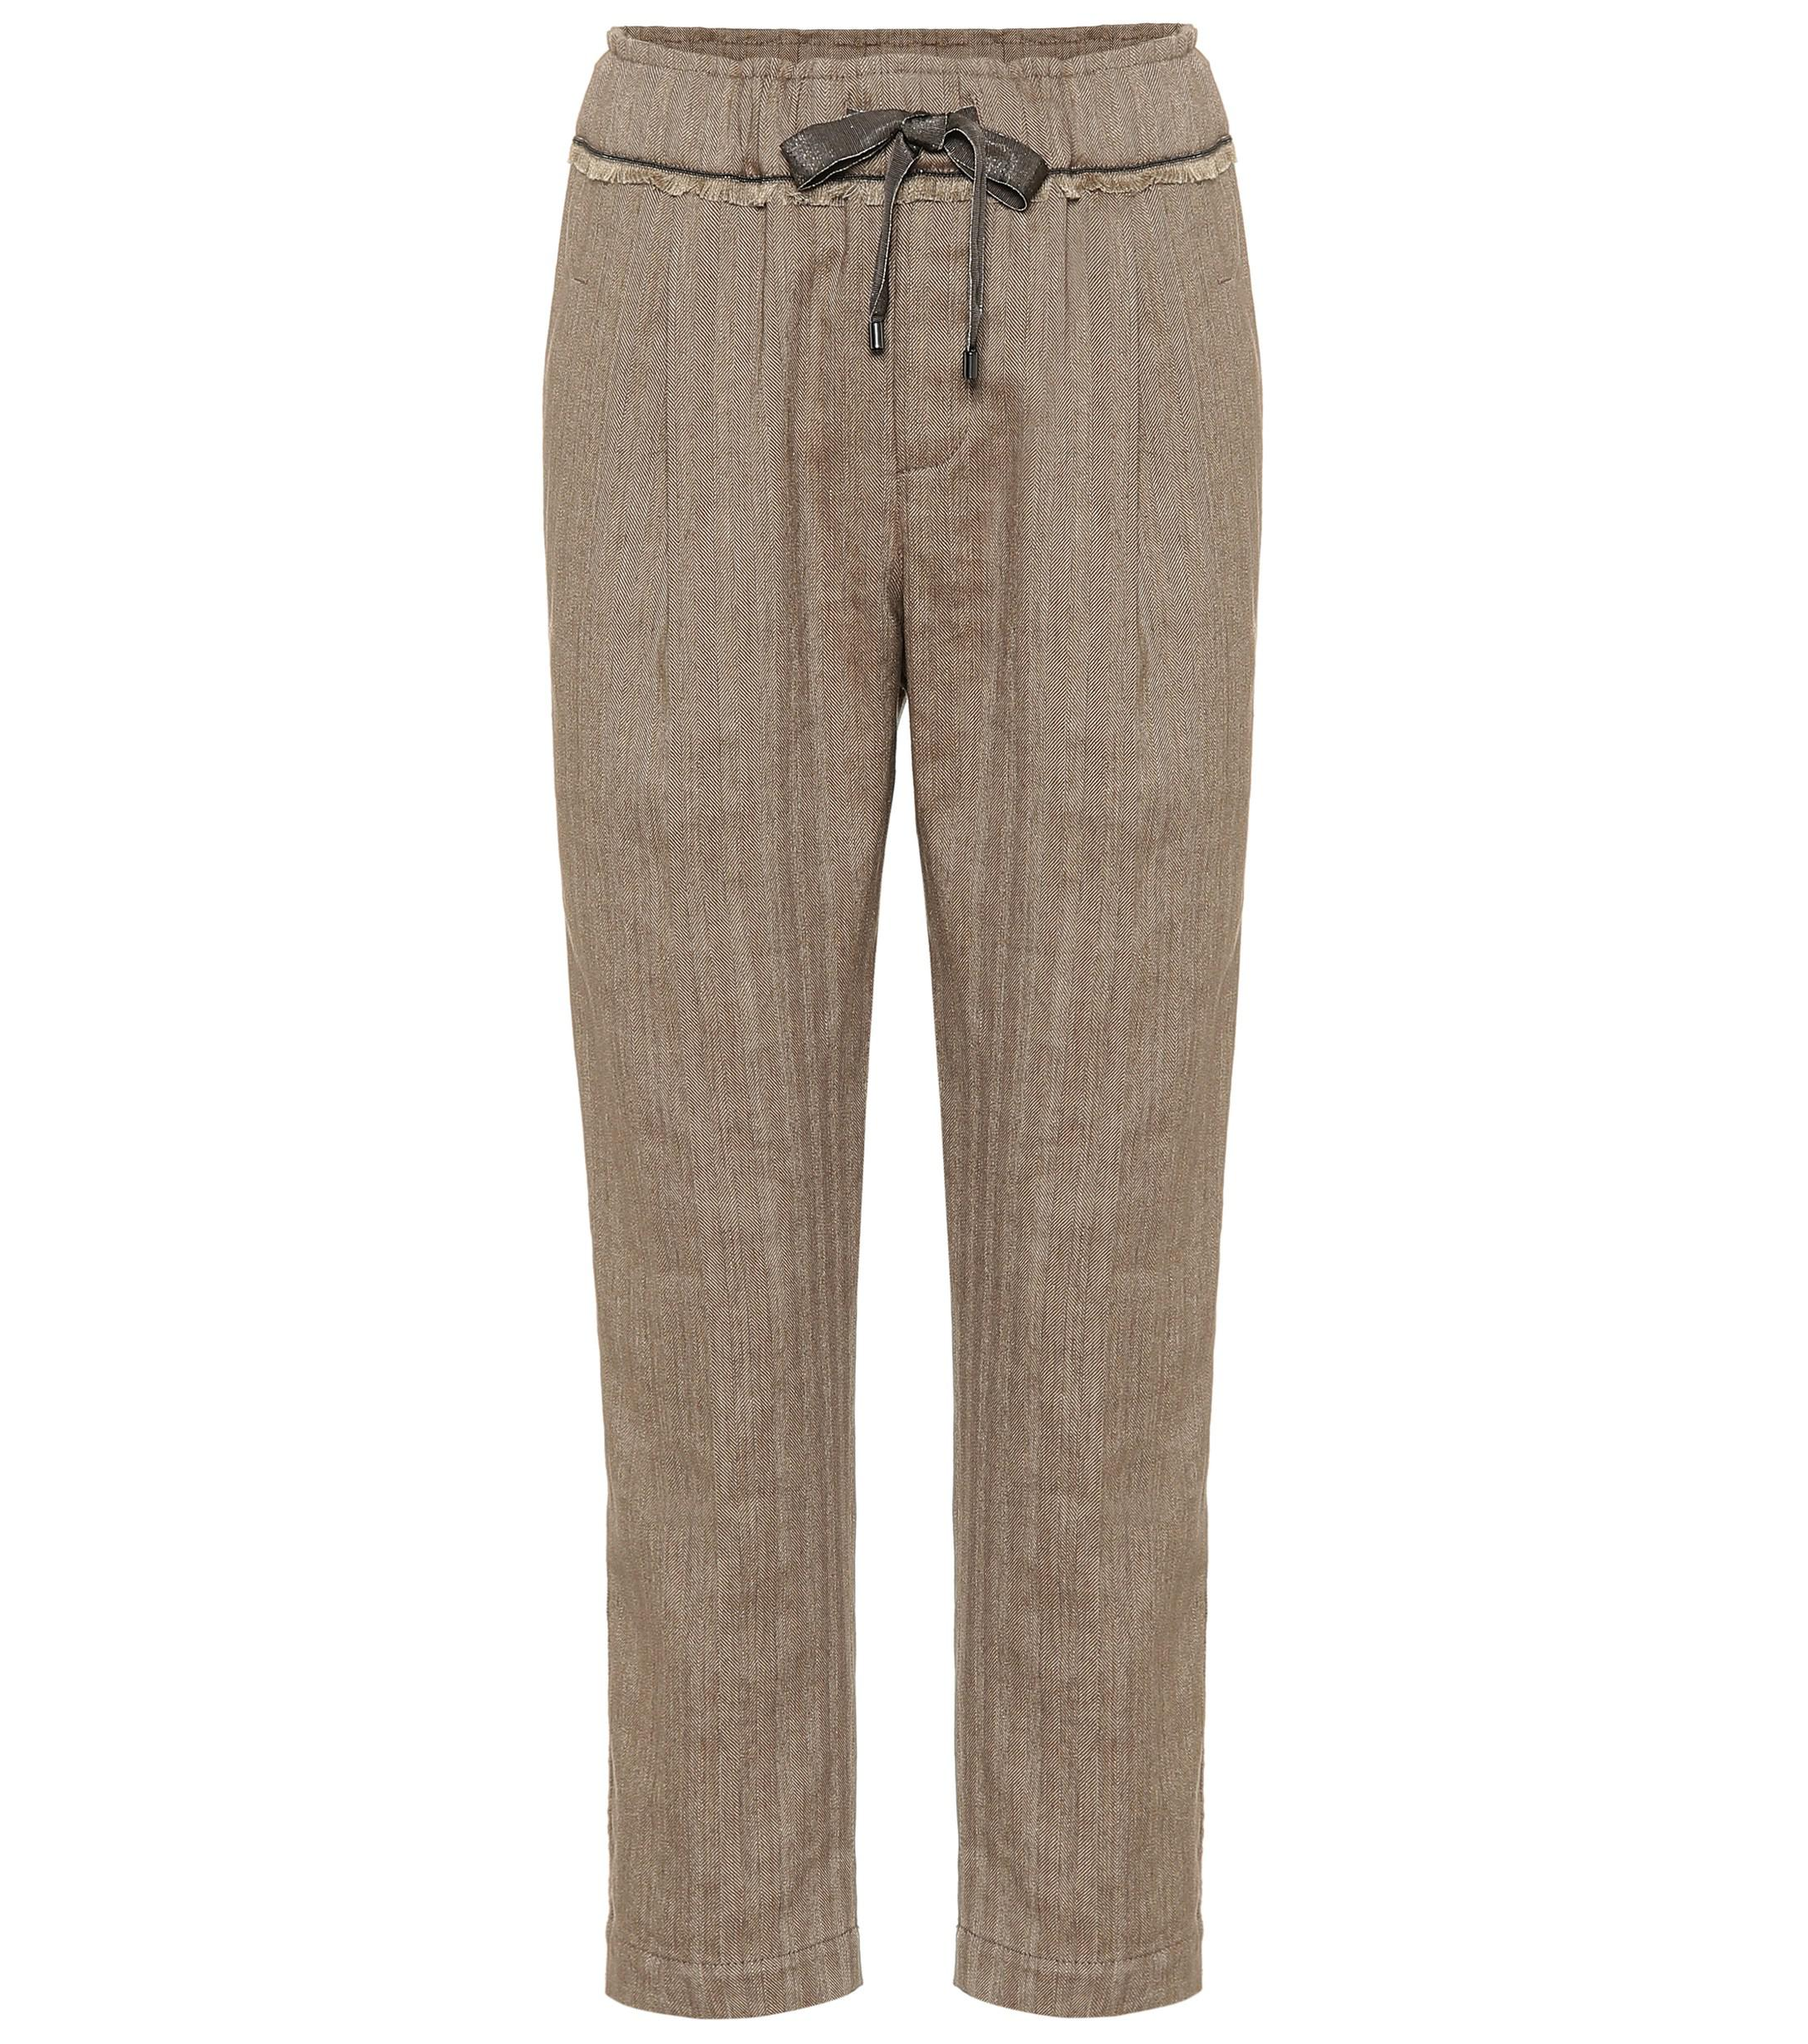 cc801ad5 brunello-cucinelli-brown-Cotton-And-Linen-Cropped-Pants.jpeg